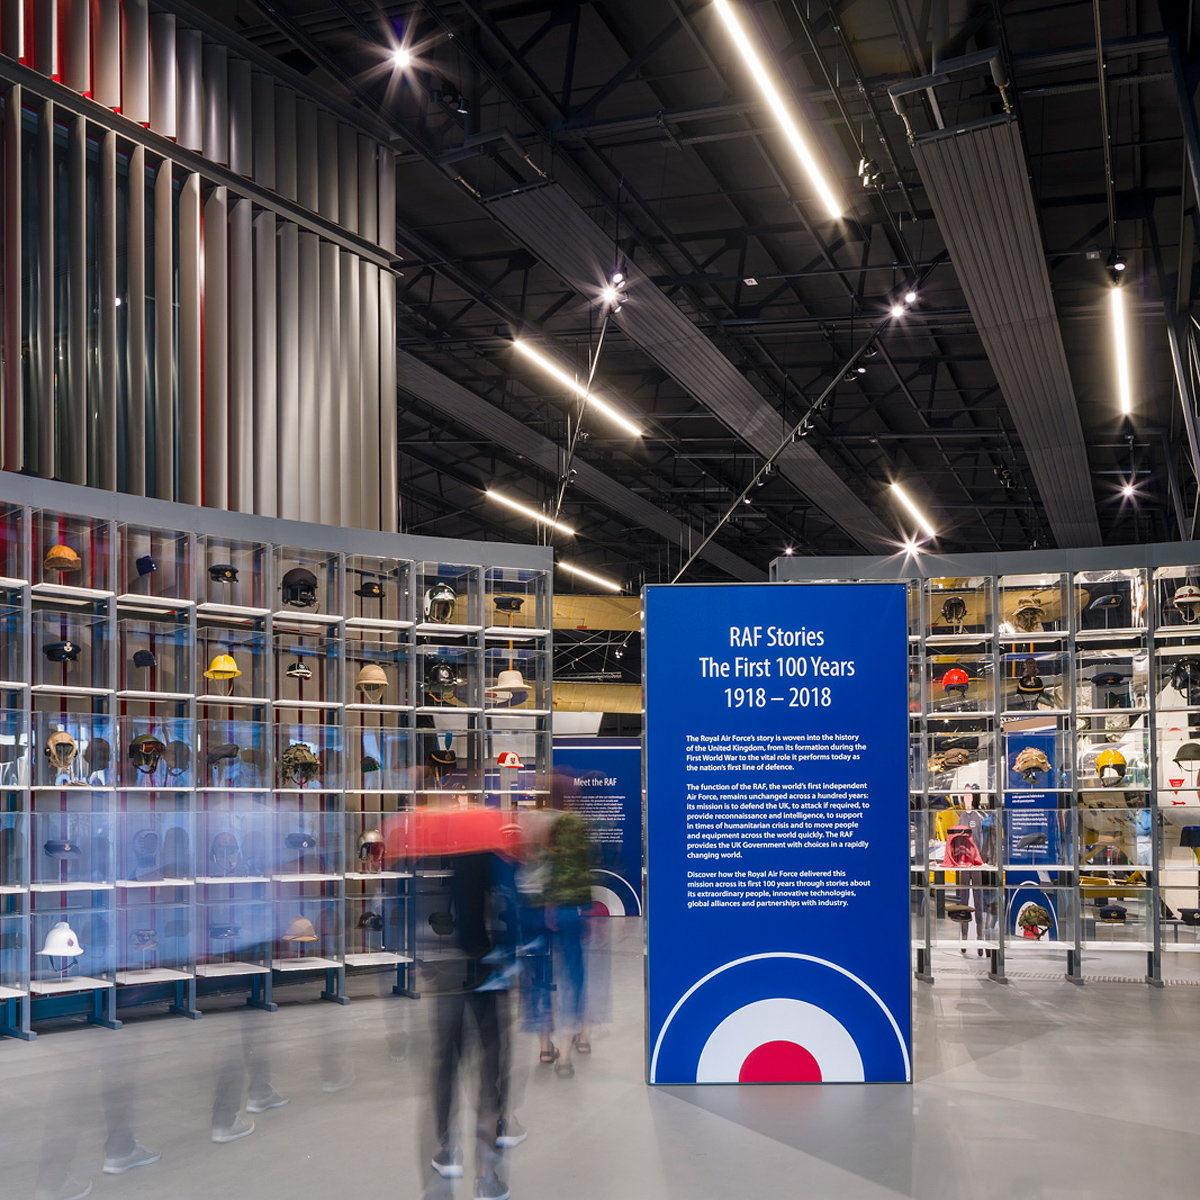 MET Studio Designs 'RAF Stories - The First 100 Years 1918-2018' Exhibition at RAF Museum London